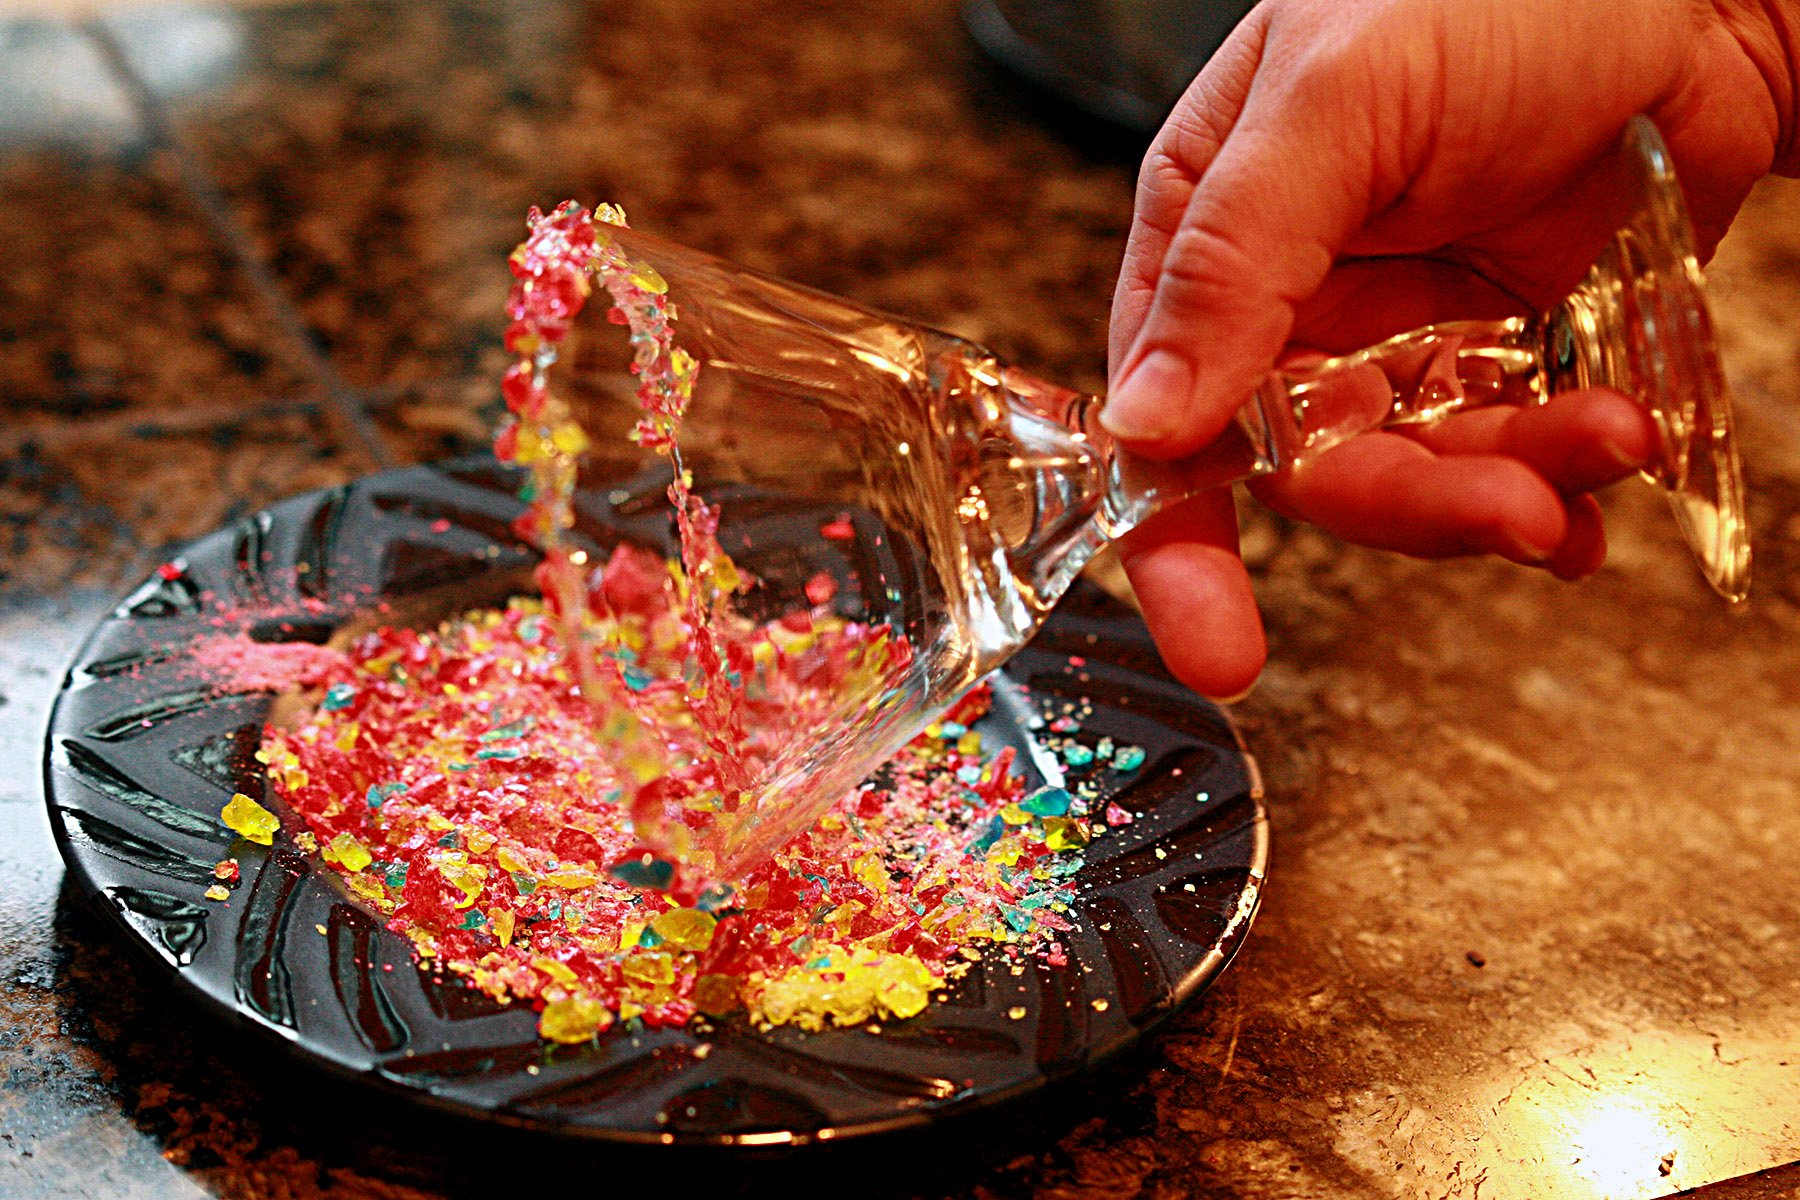 A hand twirls the rim of a martini glass in a dish of smashed up candy.